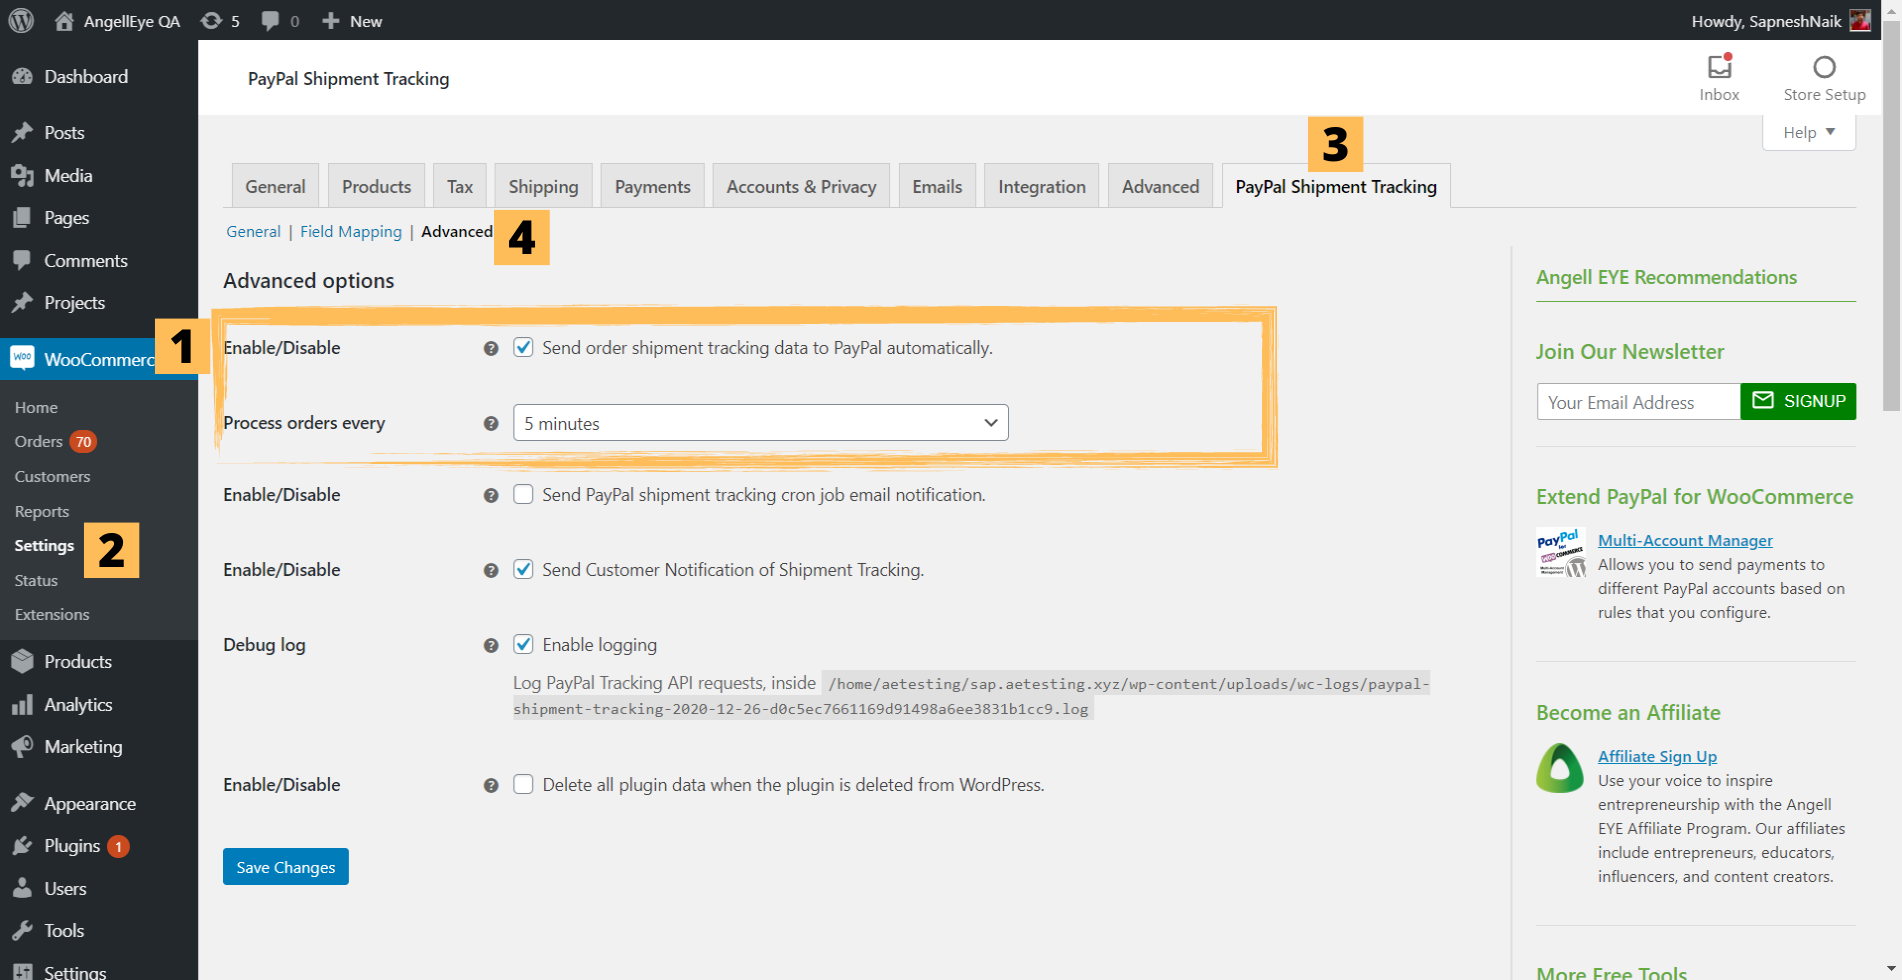 Step 2.2: Shipstation with PayPal Shipment Tracking for WooCommerce Plugin